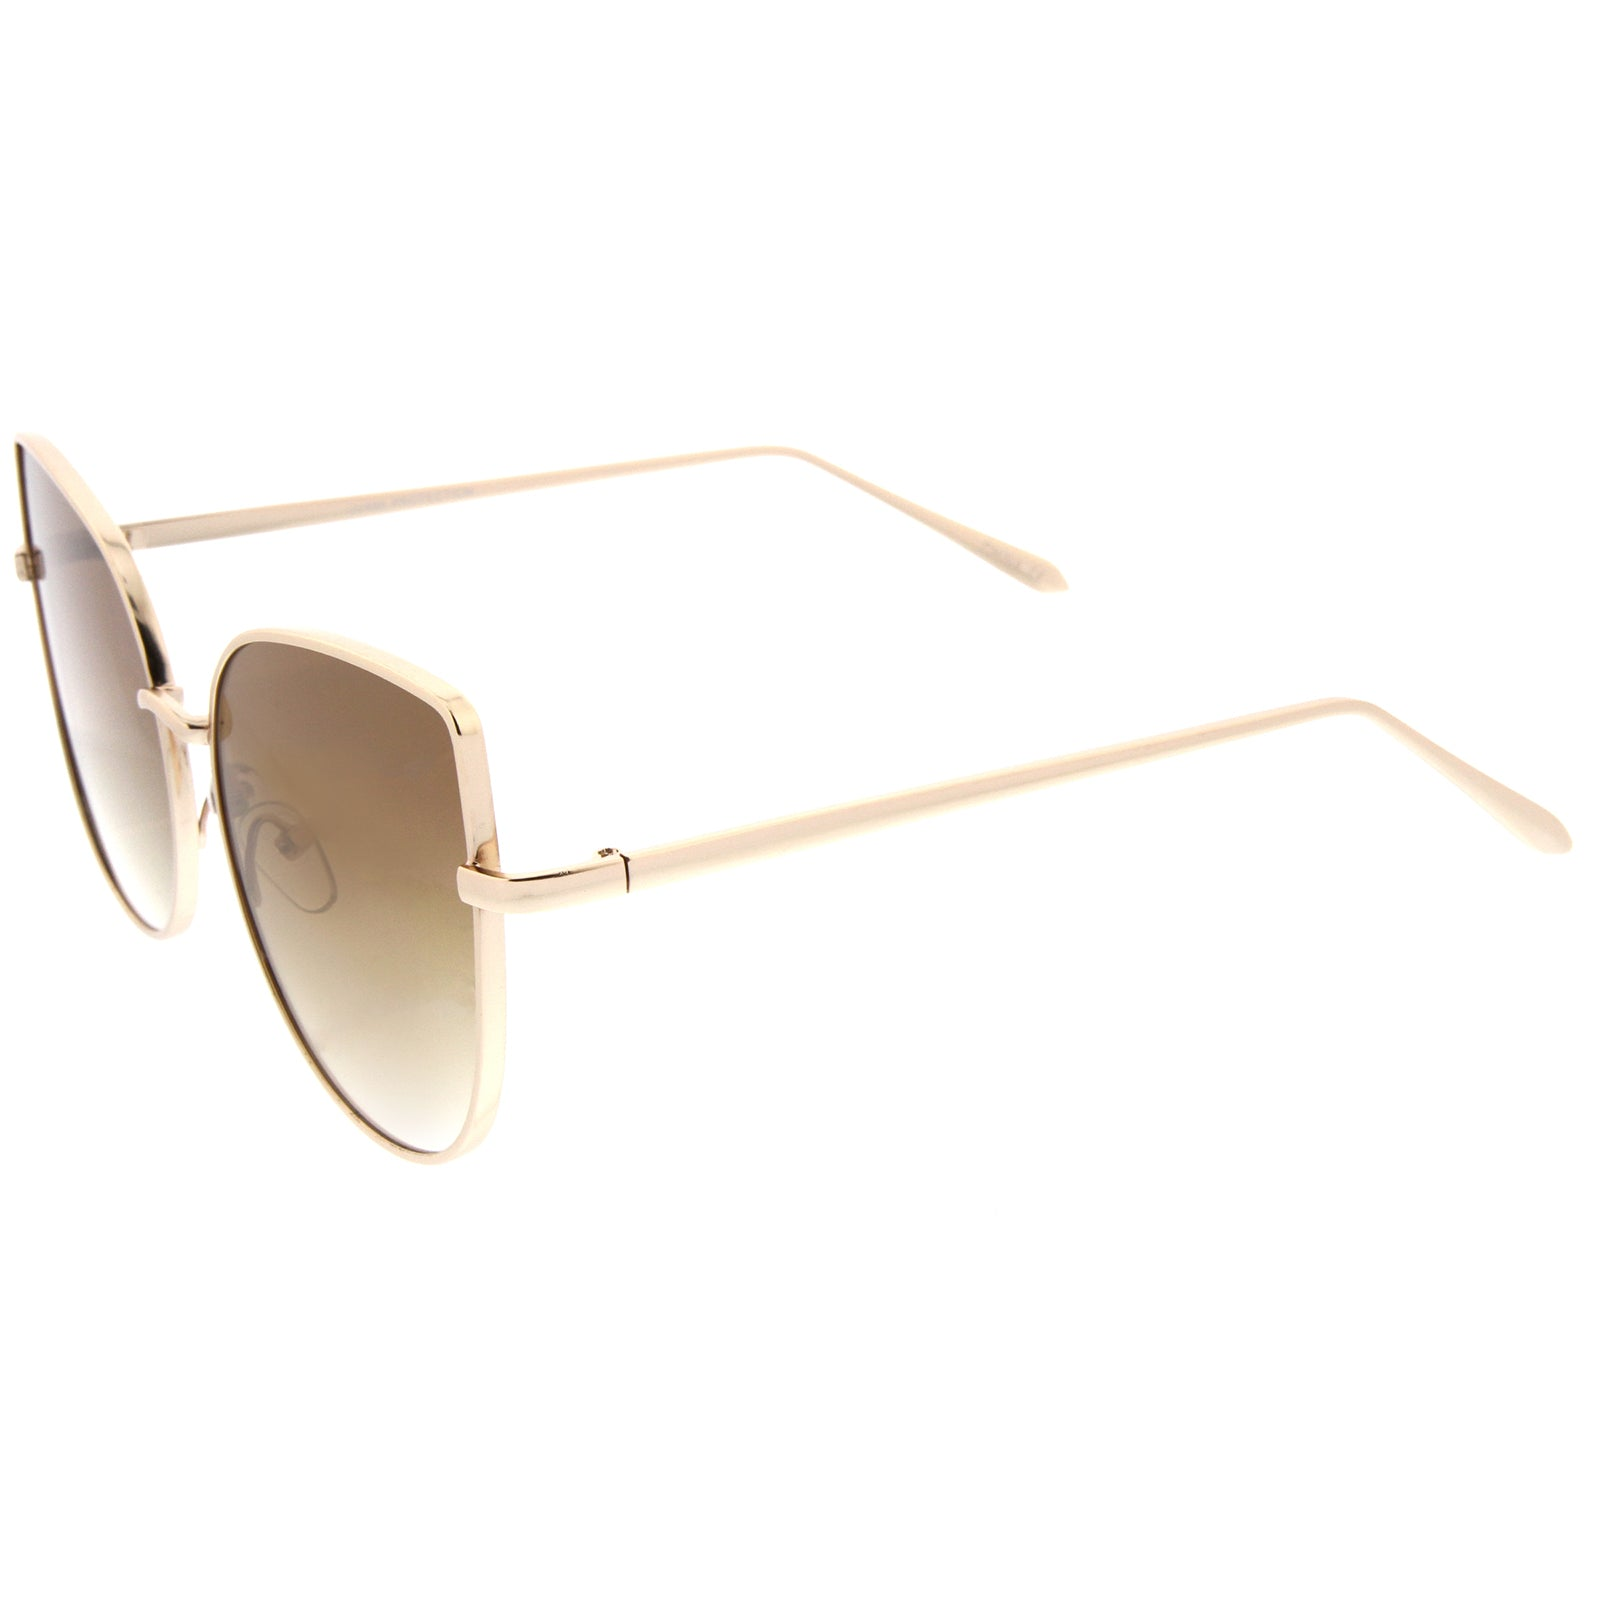 Women's Oversize Slim Metal Frame Gradient Flat Lens Cat Eye Sunglasses 58mm - sunglass.la - 3